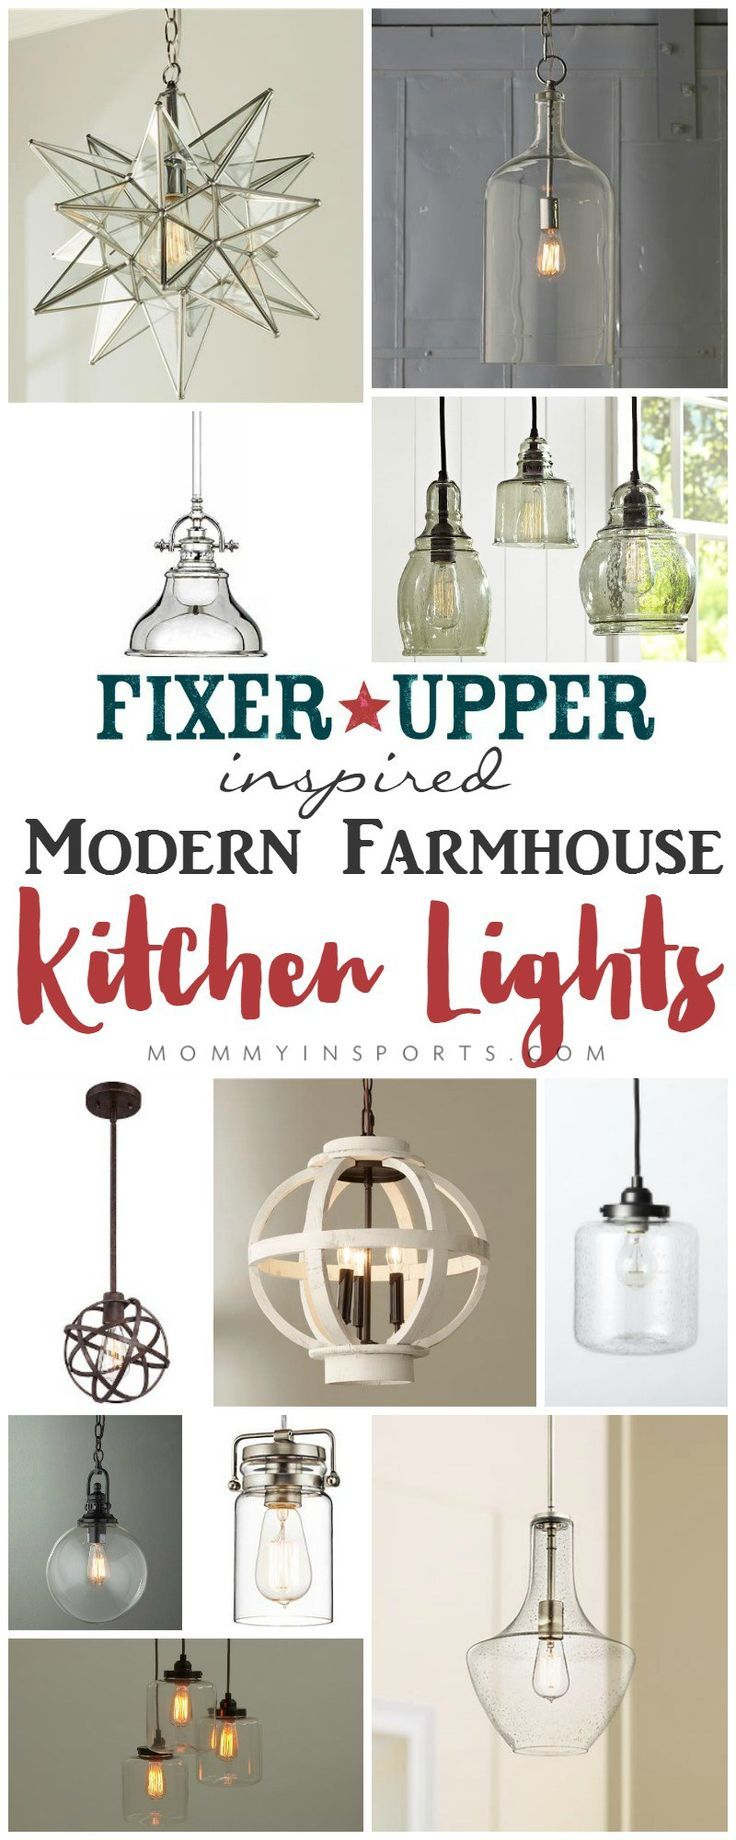 Looking for a fixer upper inspired modern farmhouse kitchen light check out this list of affordable options that will liven up your kitchen